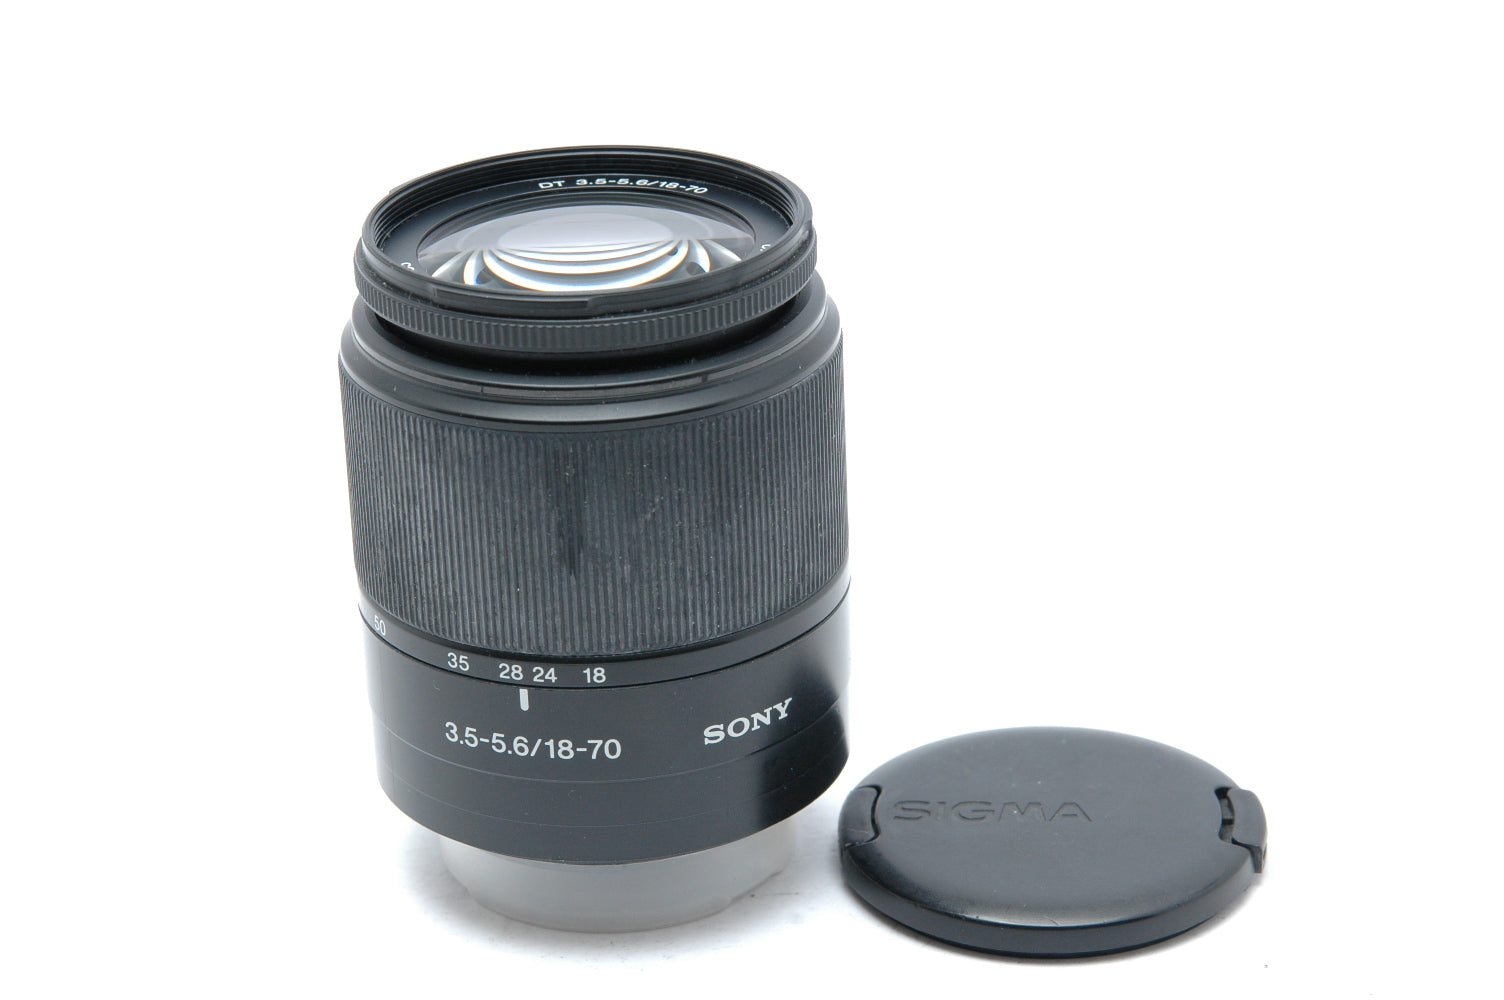 Used Sony 18-70 mm  f3.5-5.6 Zoom Lens for Sony A Mount